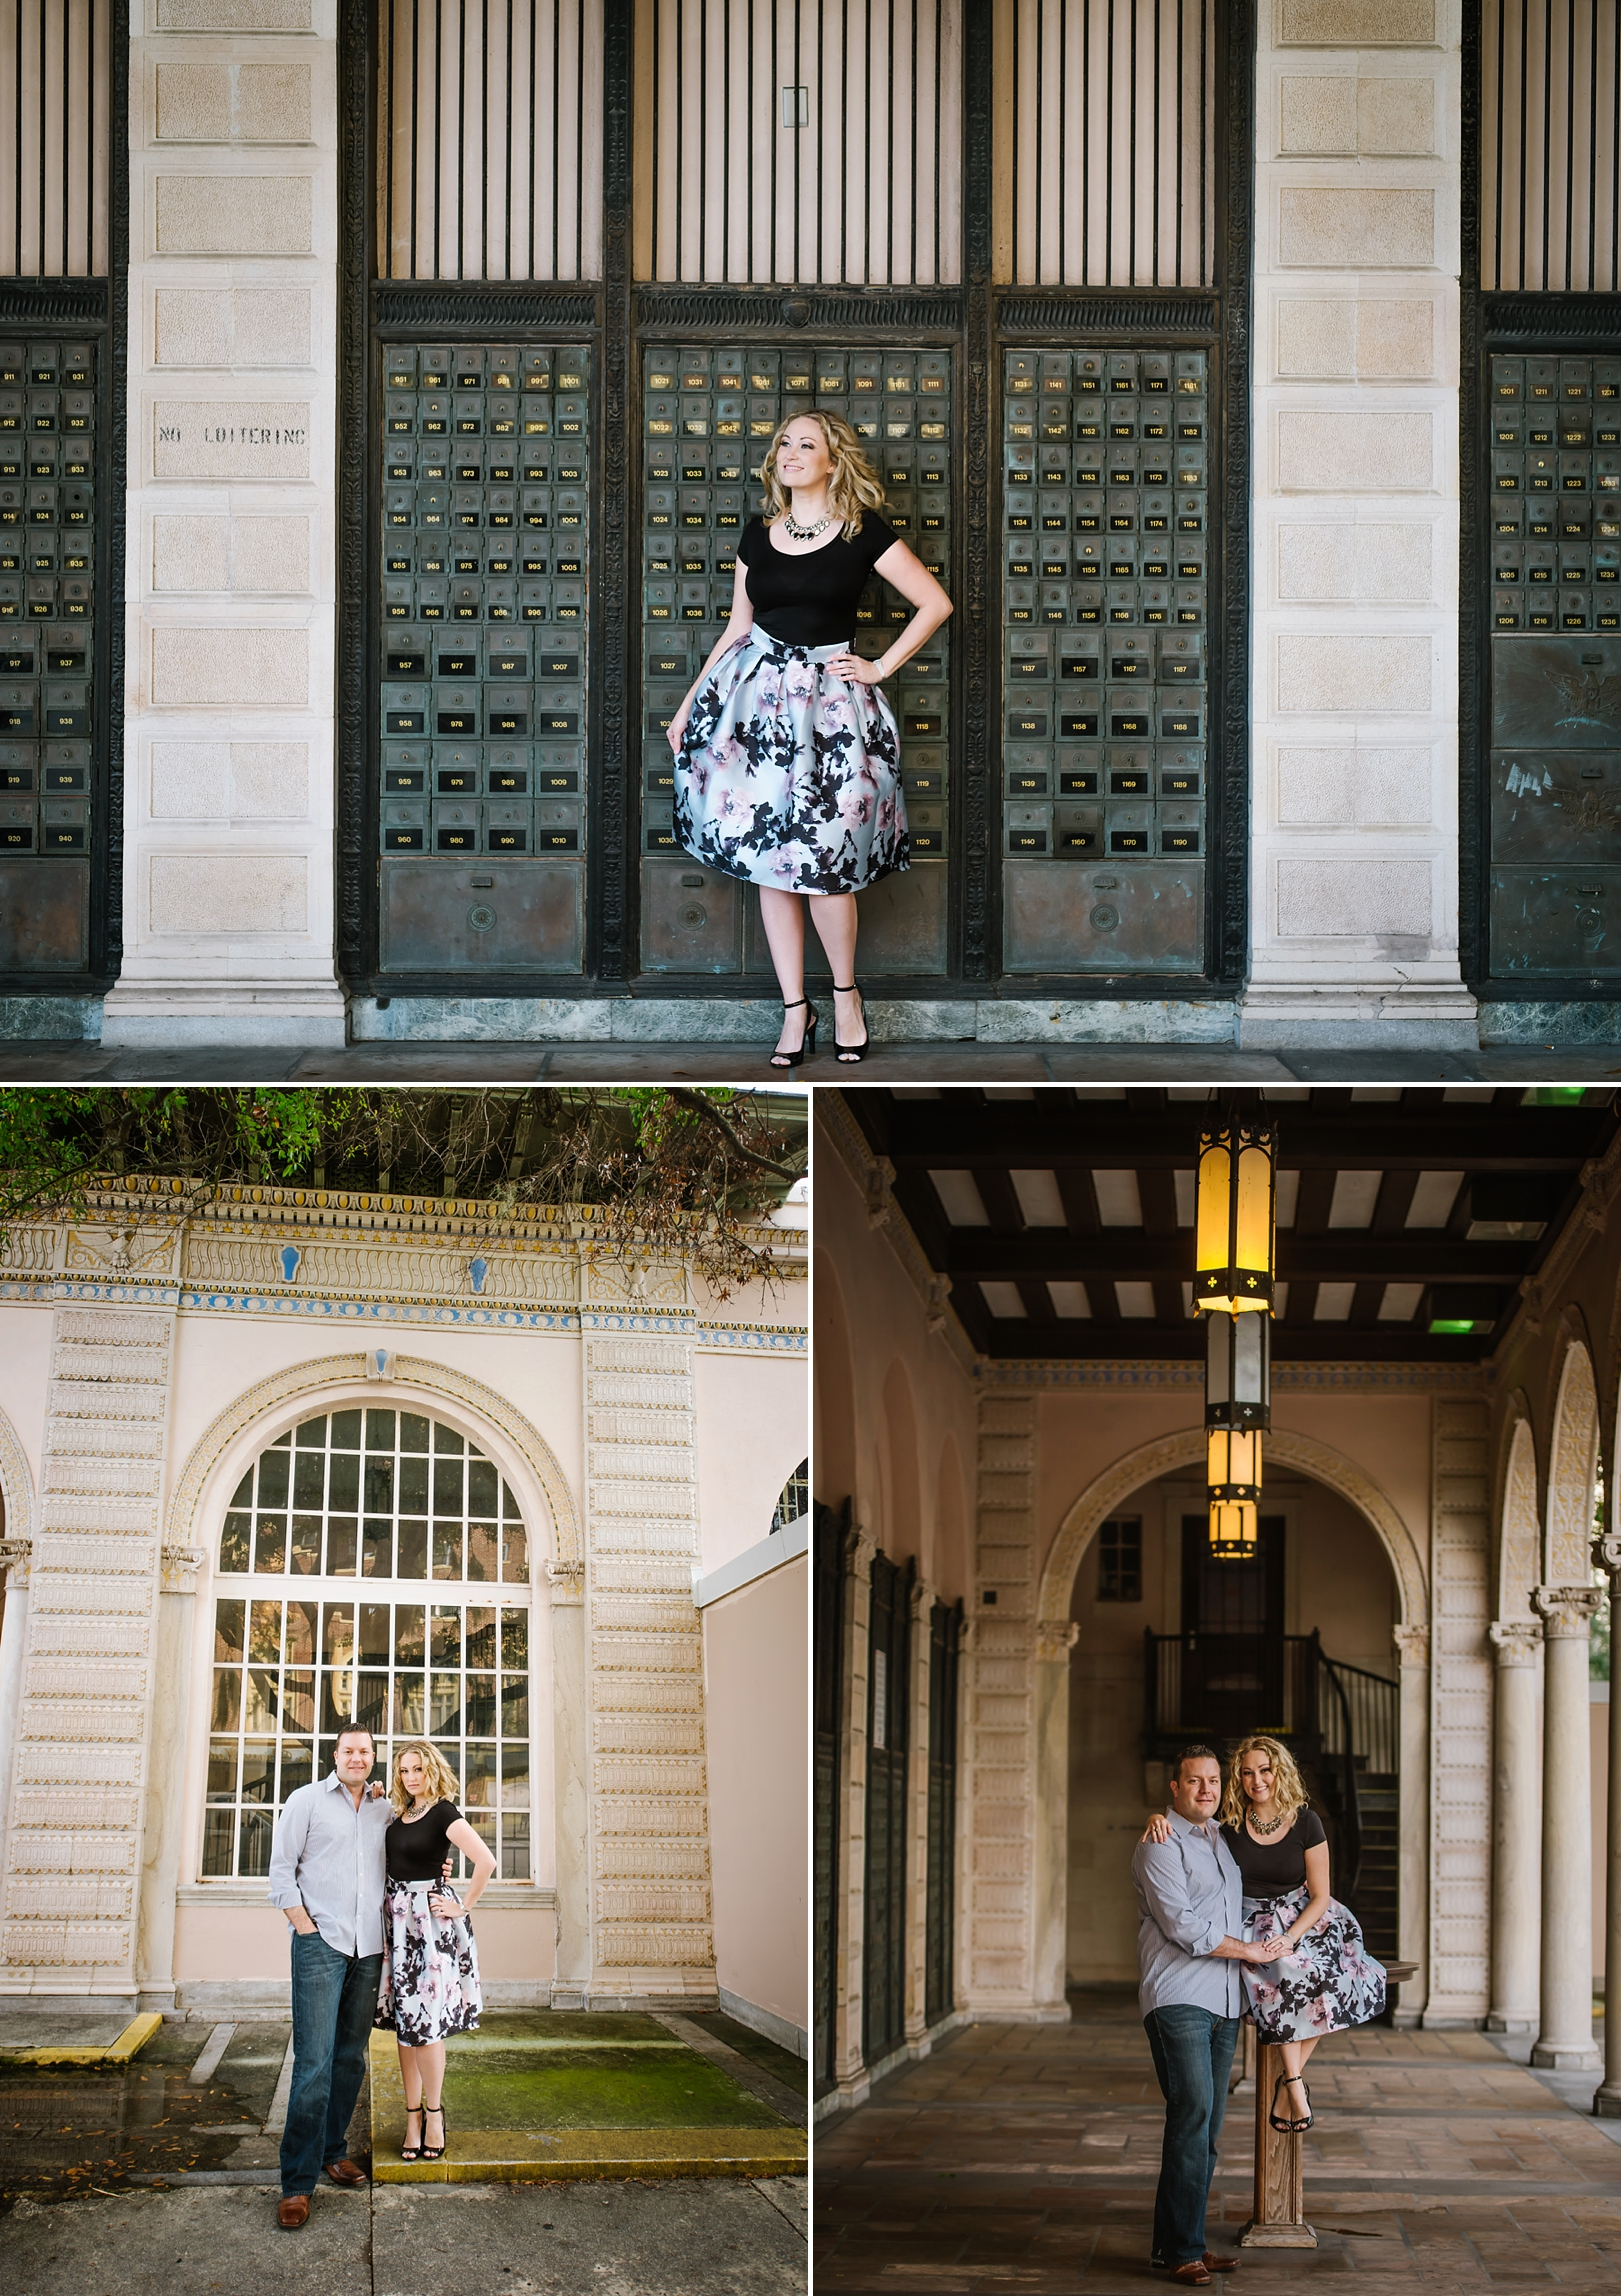 Urban Historic Engagement Photography